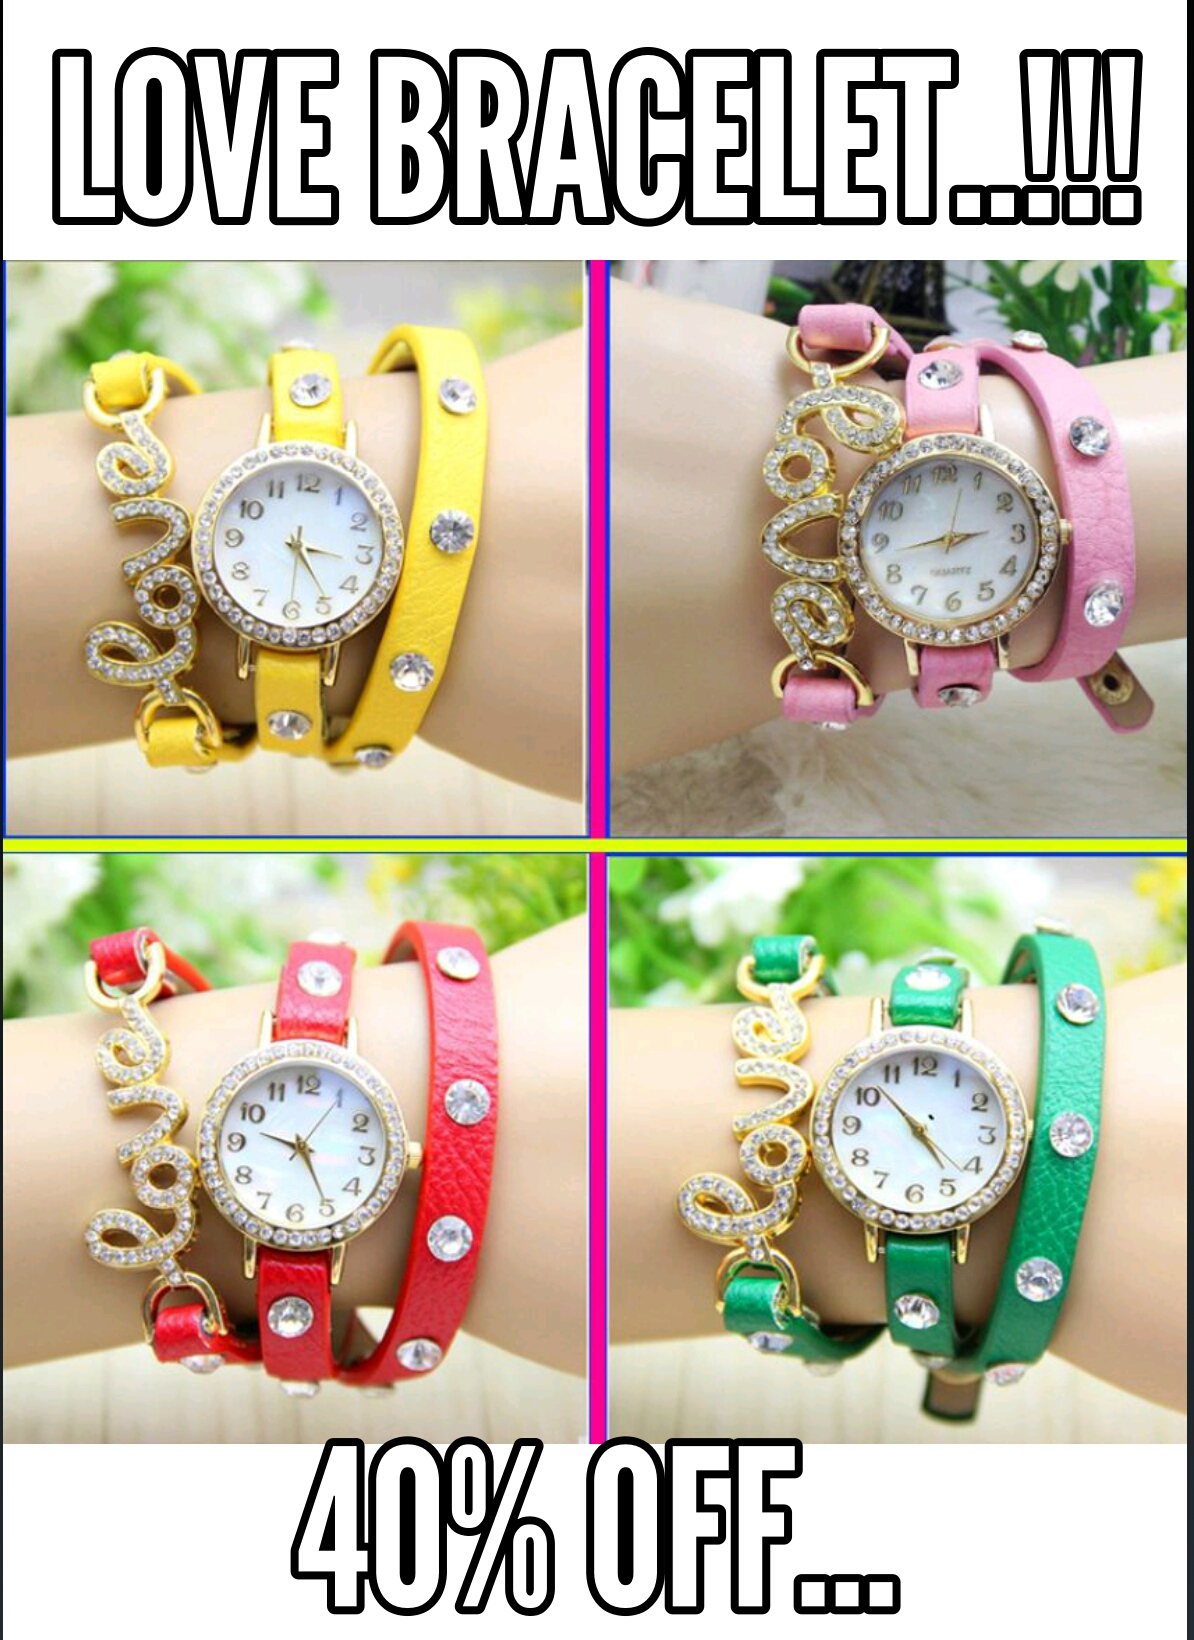 Pack of 4 Love Bracelet Watches For Her